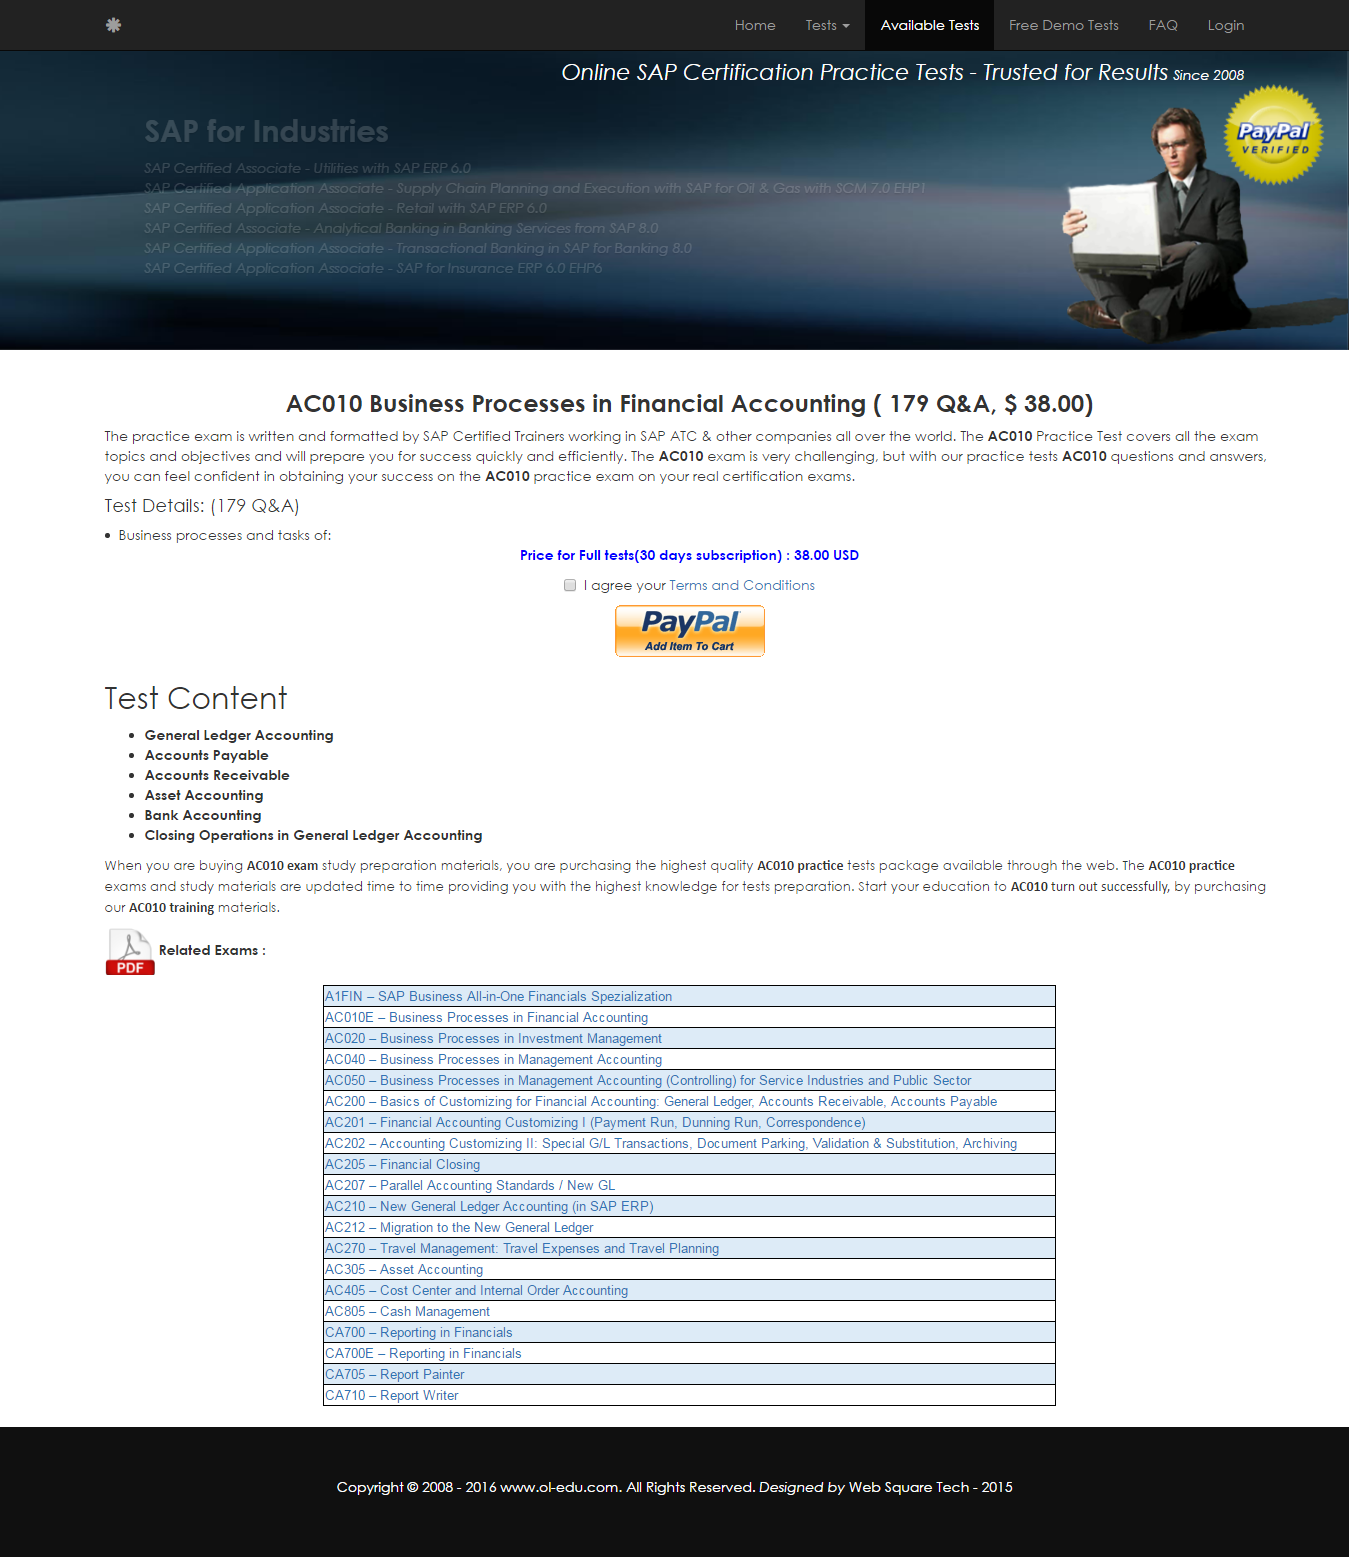 Questions and Answers for AC010 - Business Processes in